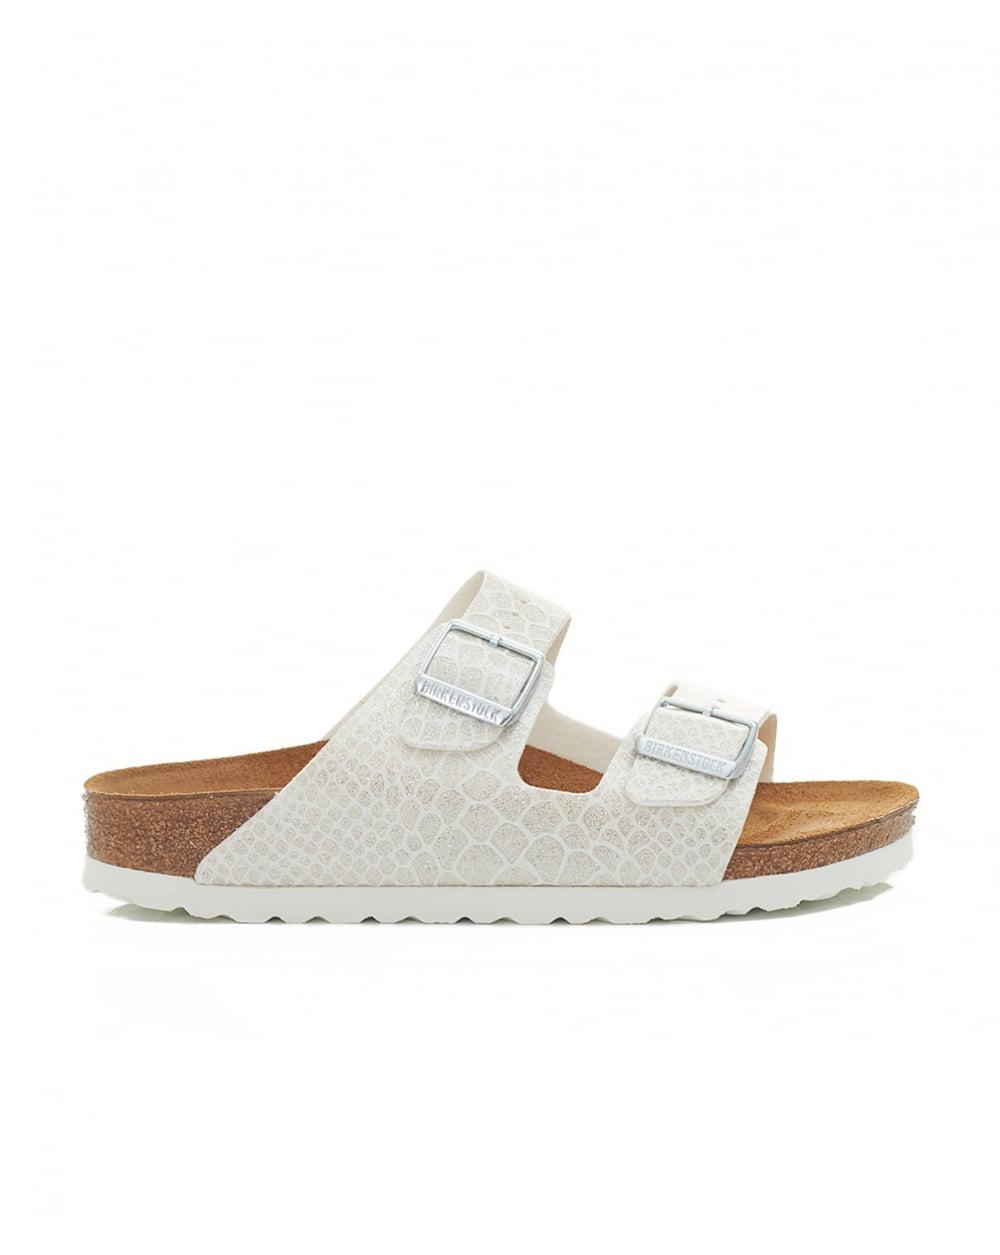 4e1275eaf16 Birkenstock Arizona Narrow Two Strap Sandals in White - Lyst